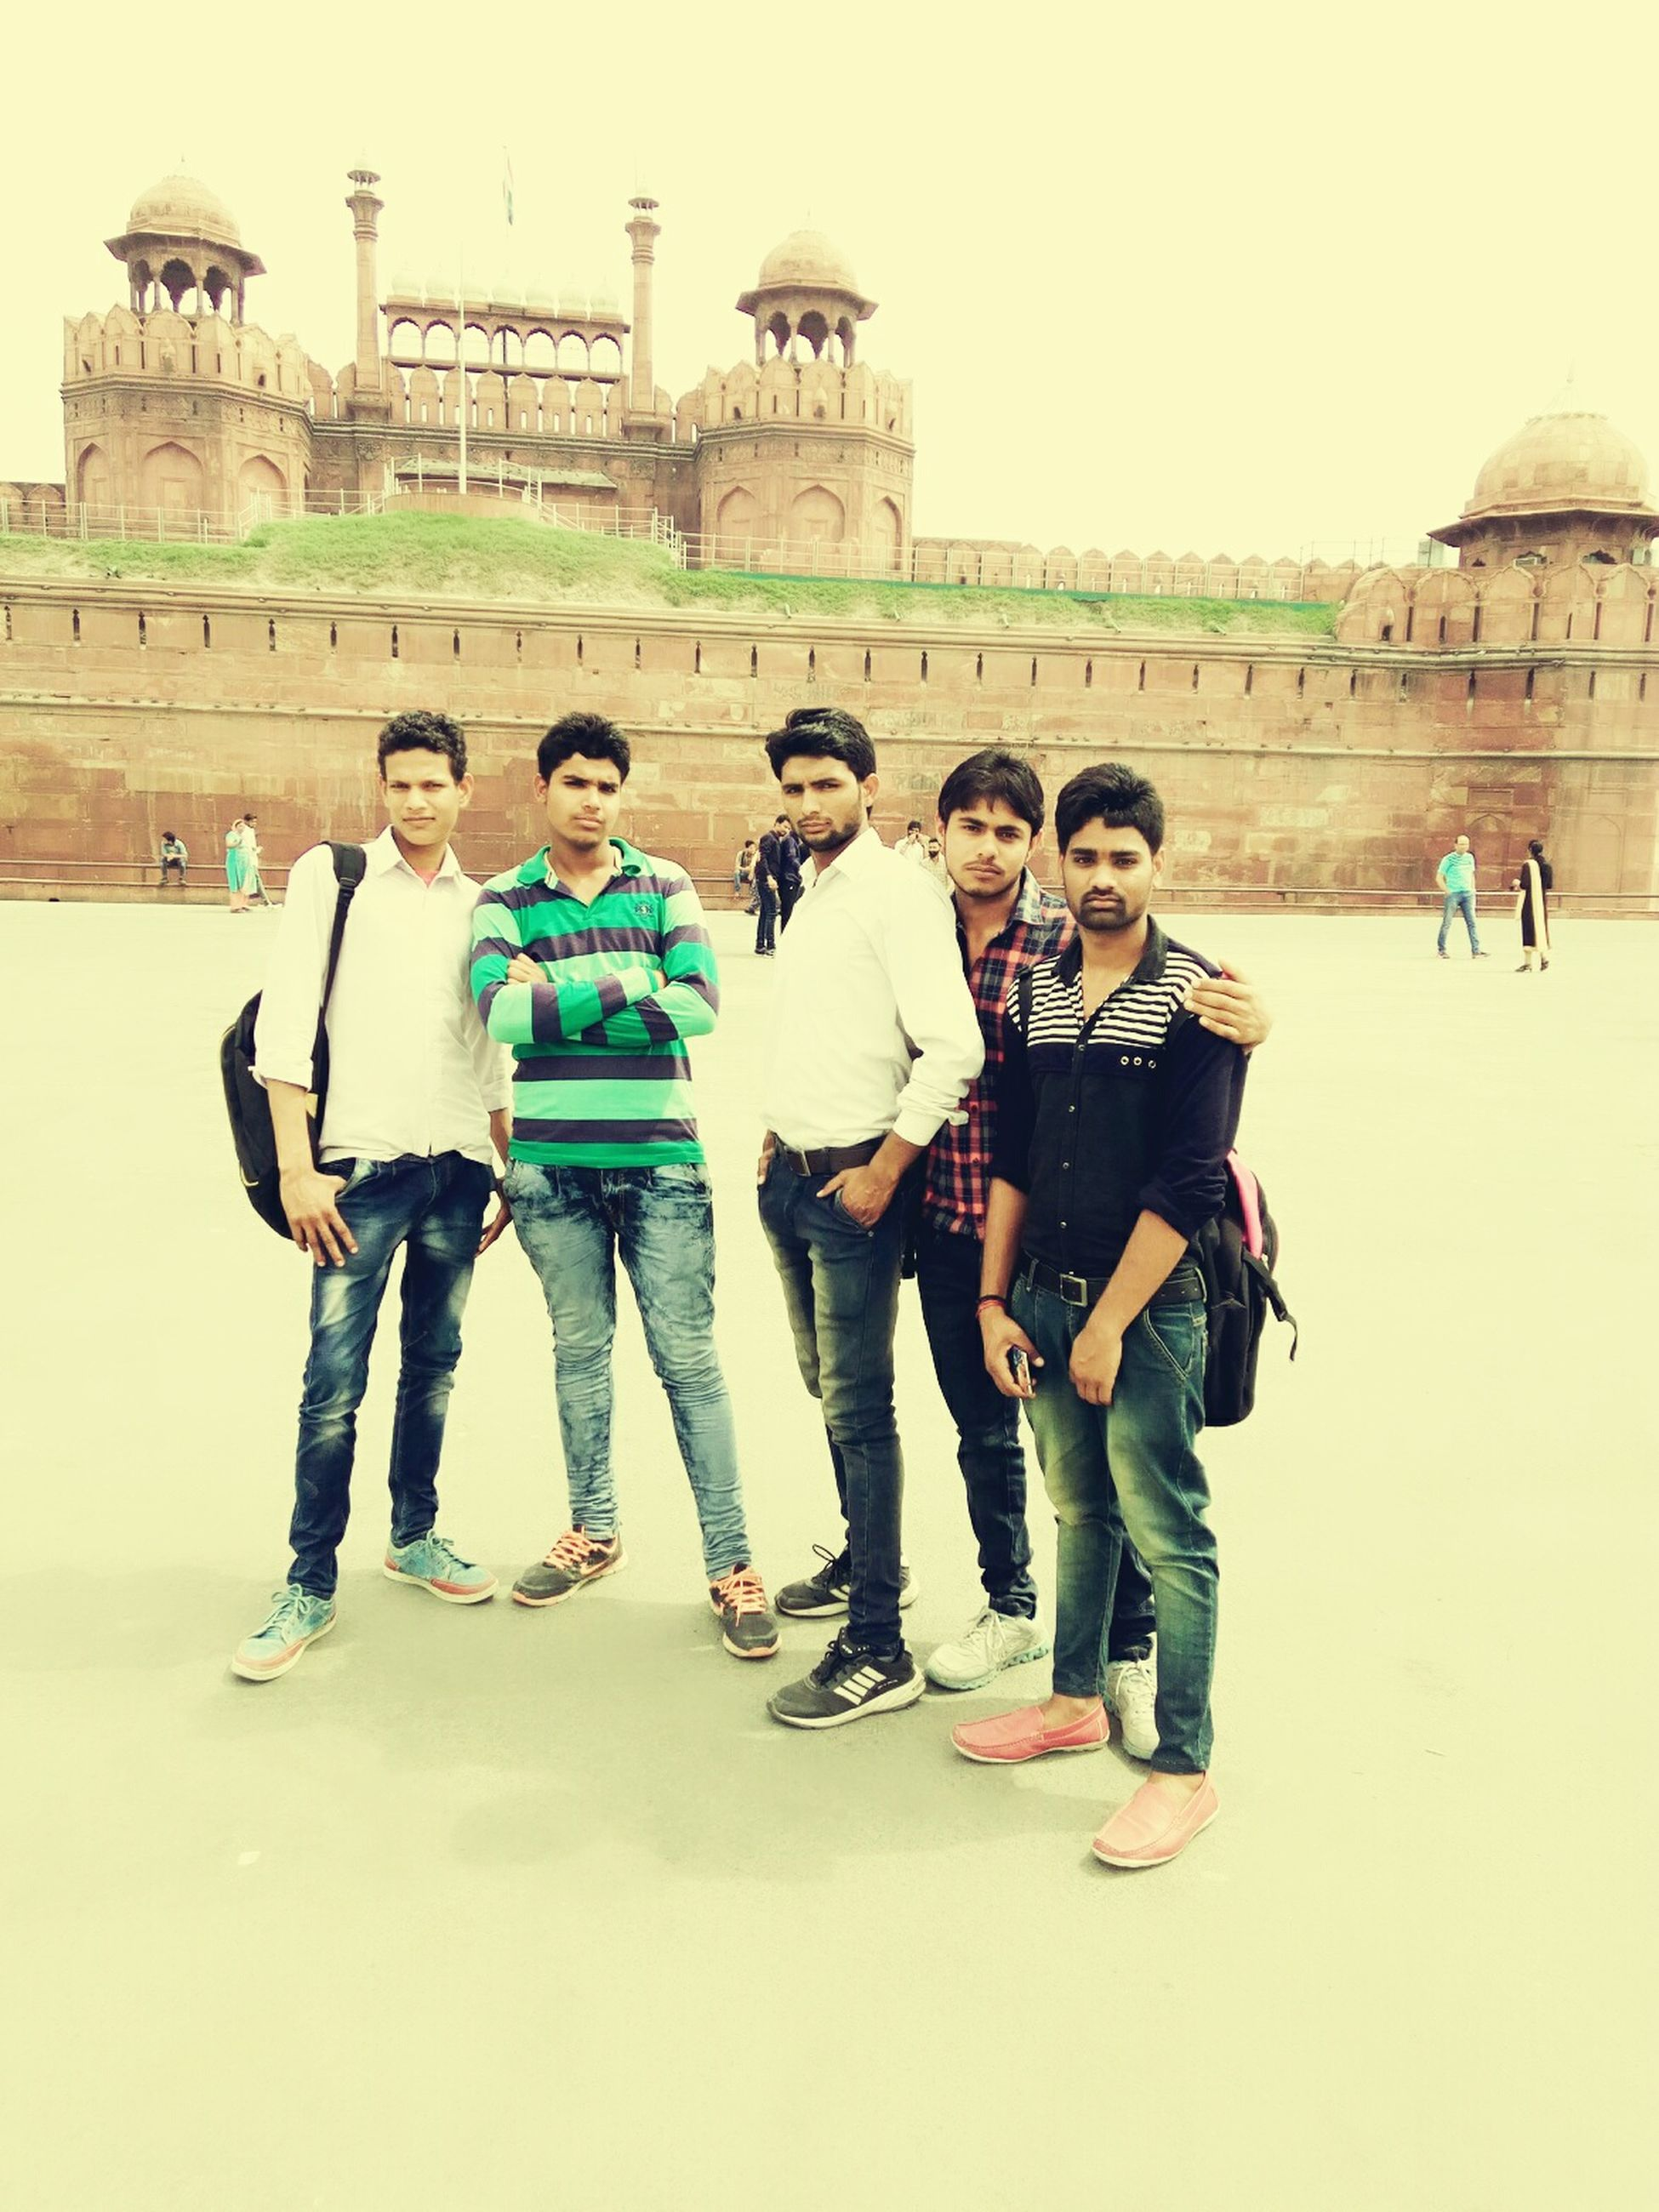 lifestyles, leisure activity, full length, casual clothing, togetherness, happiness, bonding, person, love, standing, enjoyment, large group of people, boys, friendship, fun, childhood, front view, built structure, portrait